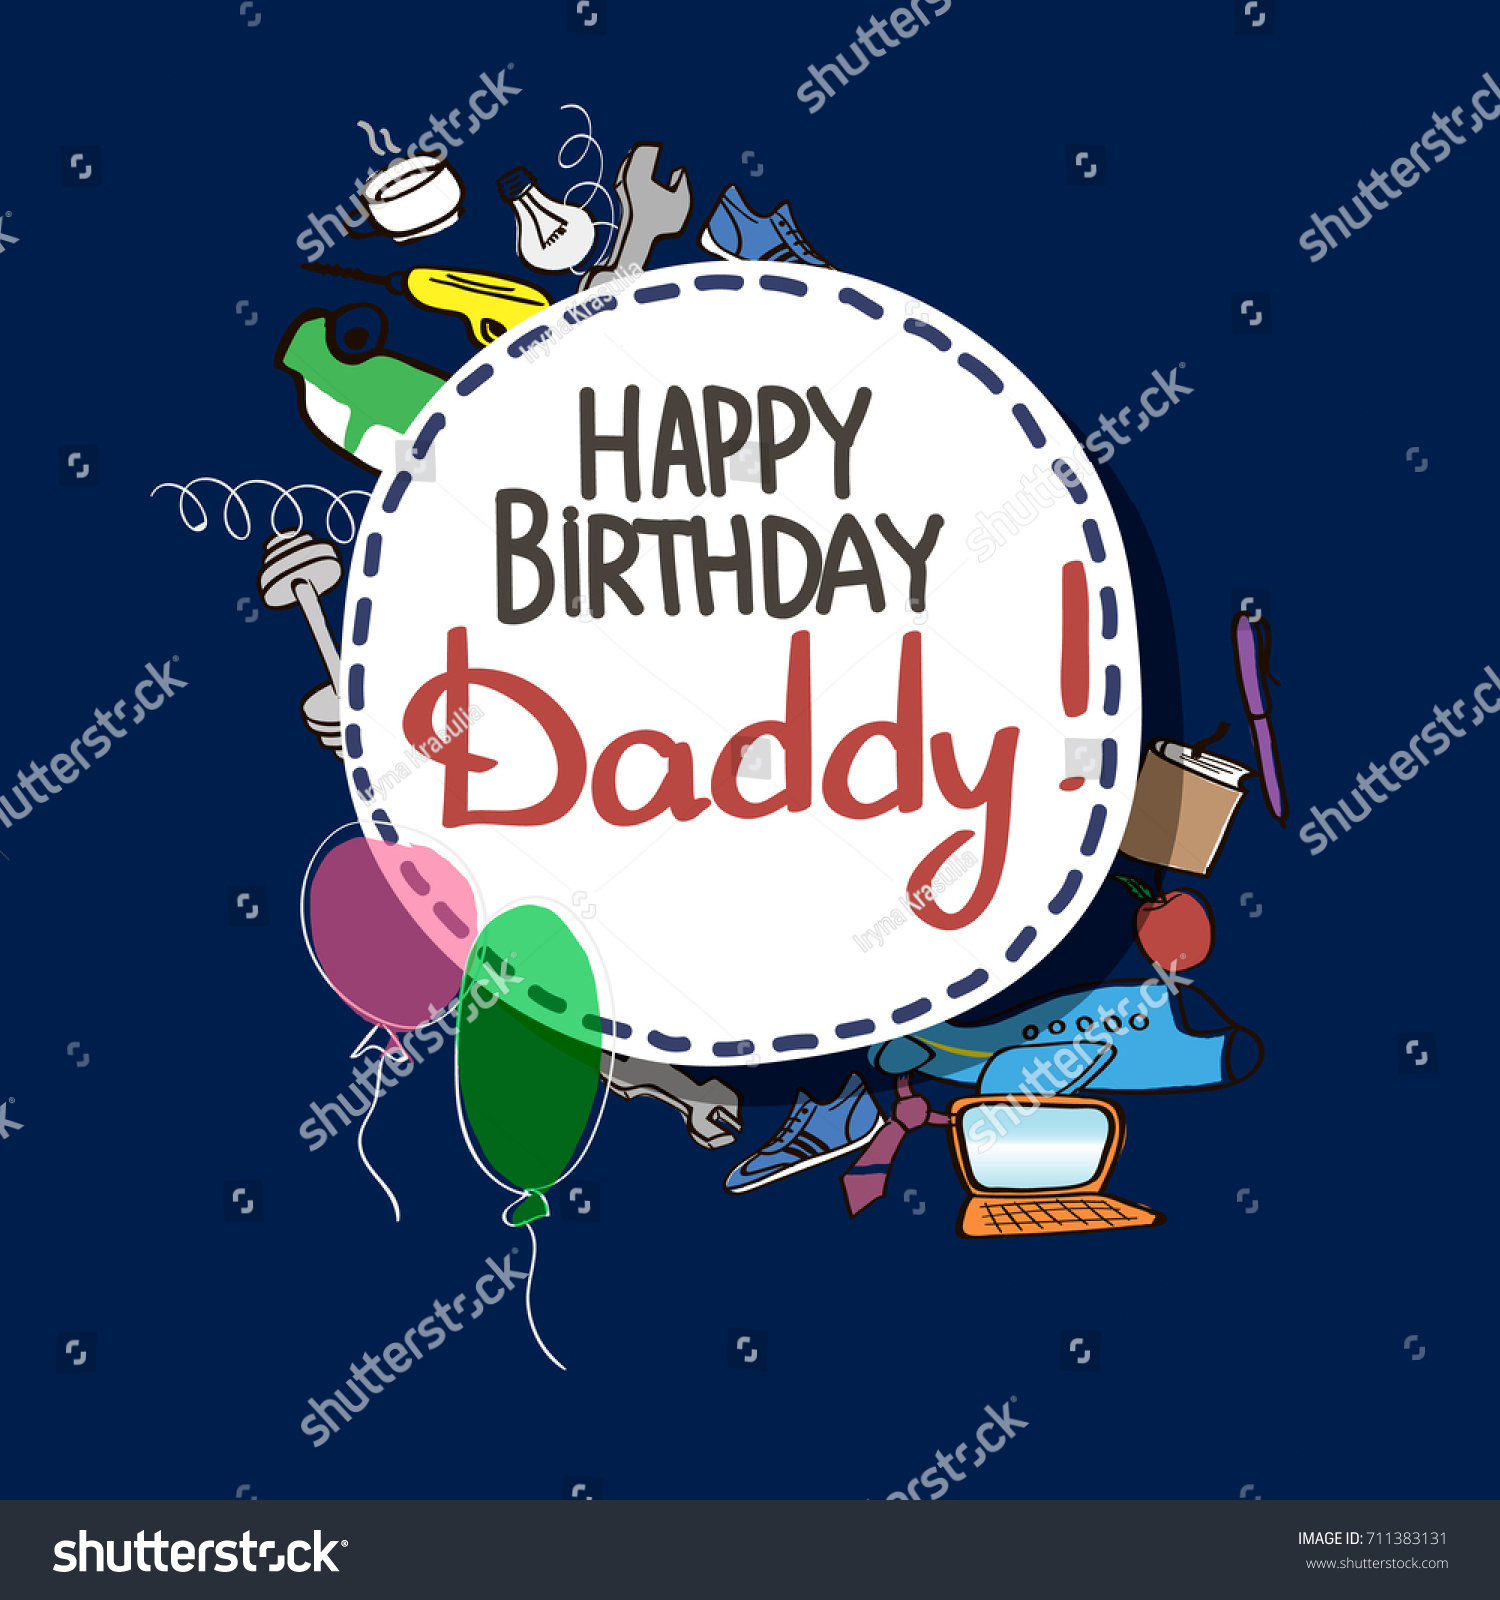 vector greeting card happy birthday daddy on the dark blue background